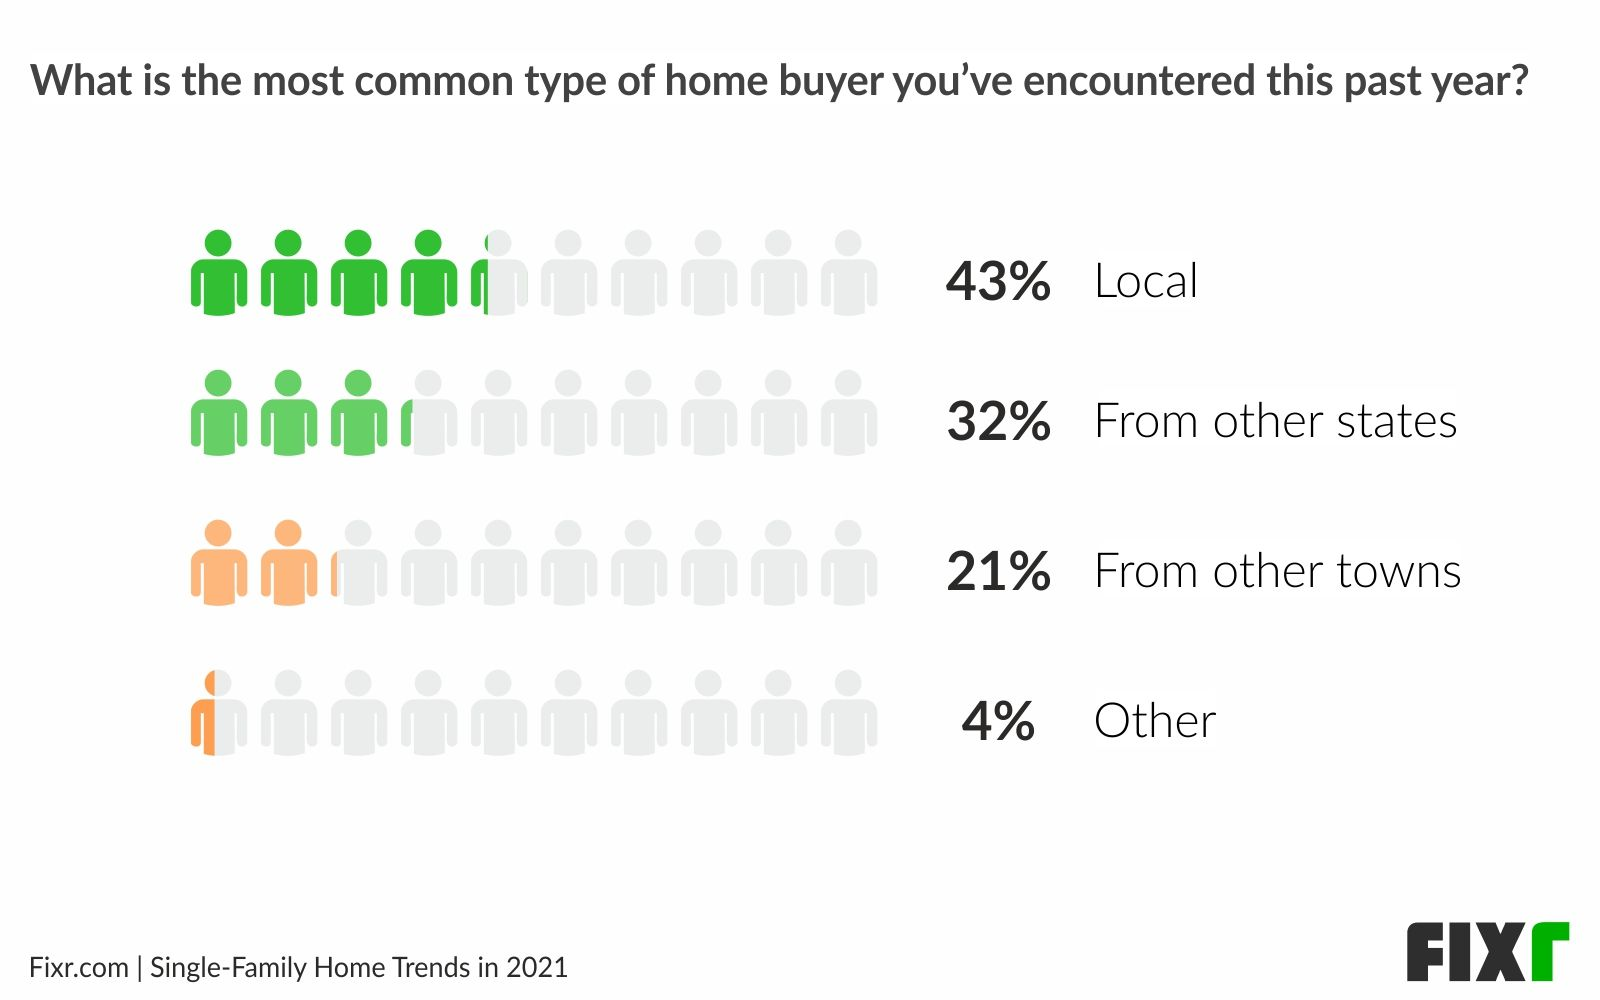 Home buyers 2021 - Local buyers lead the new single-family homes market